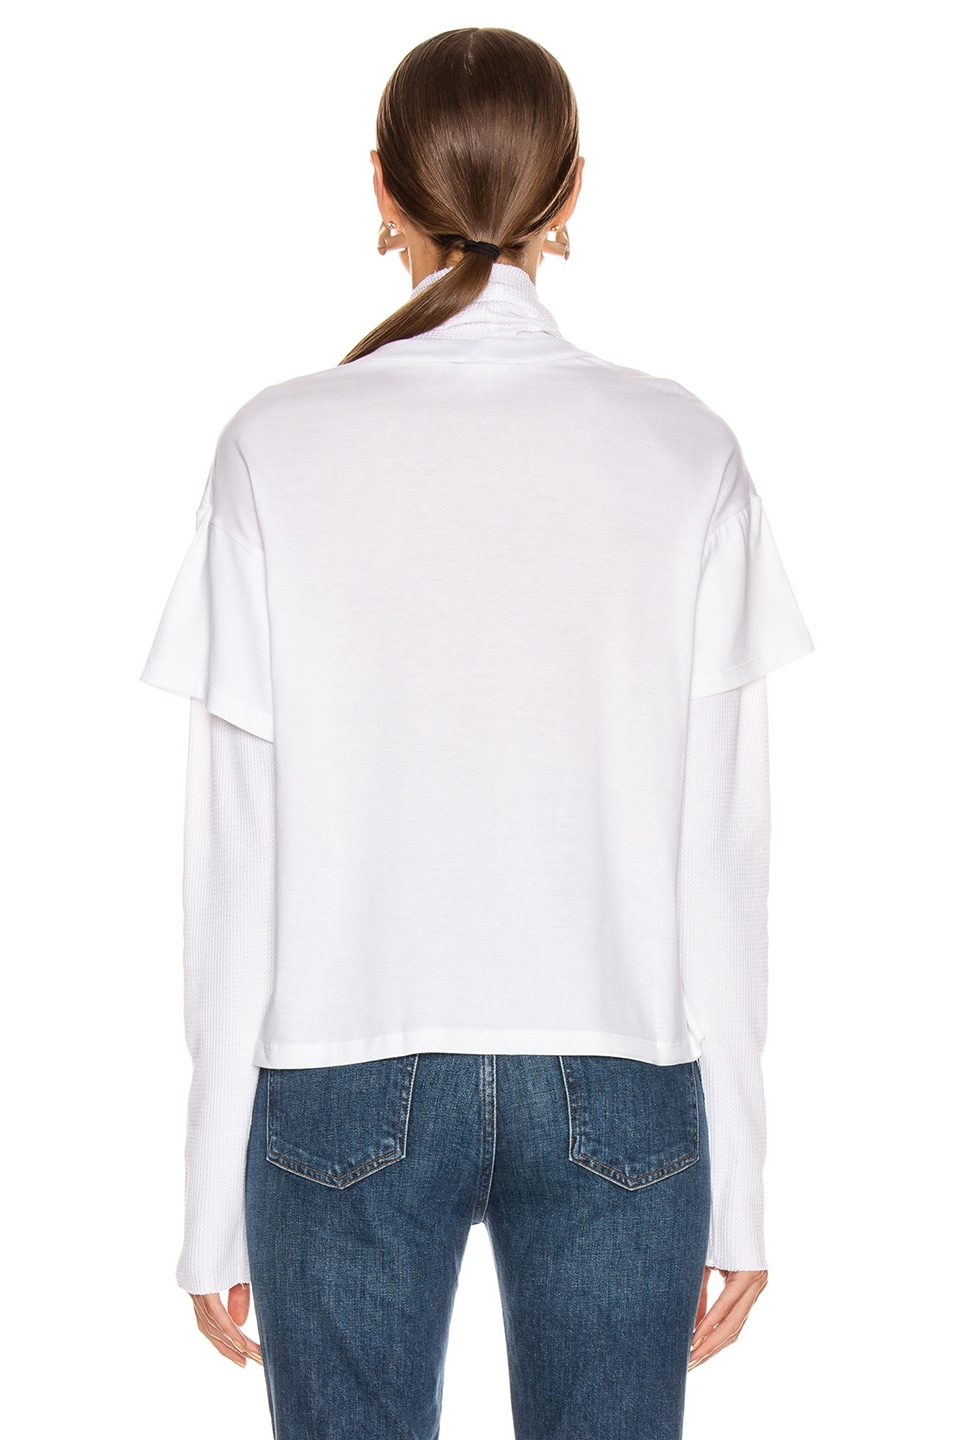 Image 3 of The Range Stark Jersey Layered Boy Tee Turtleneck in White